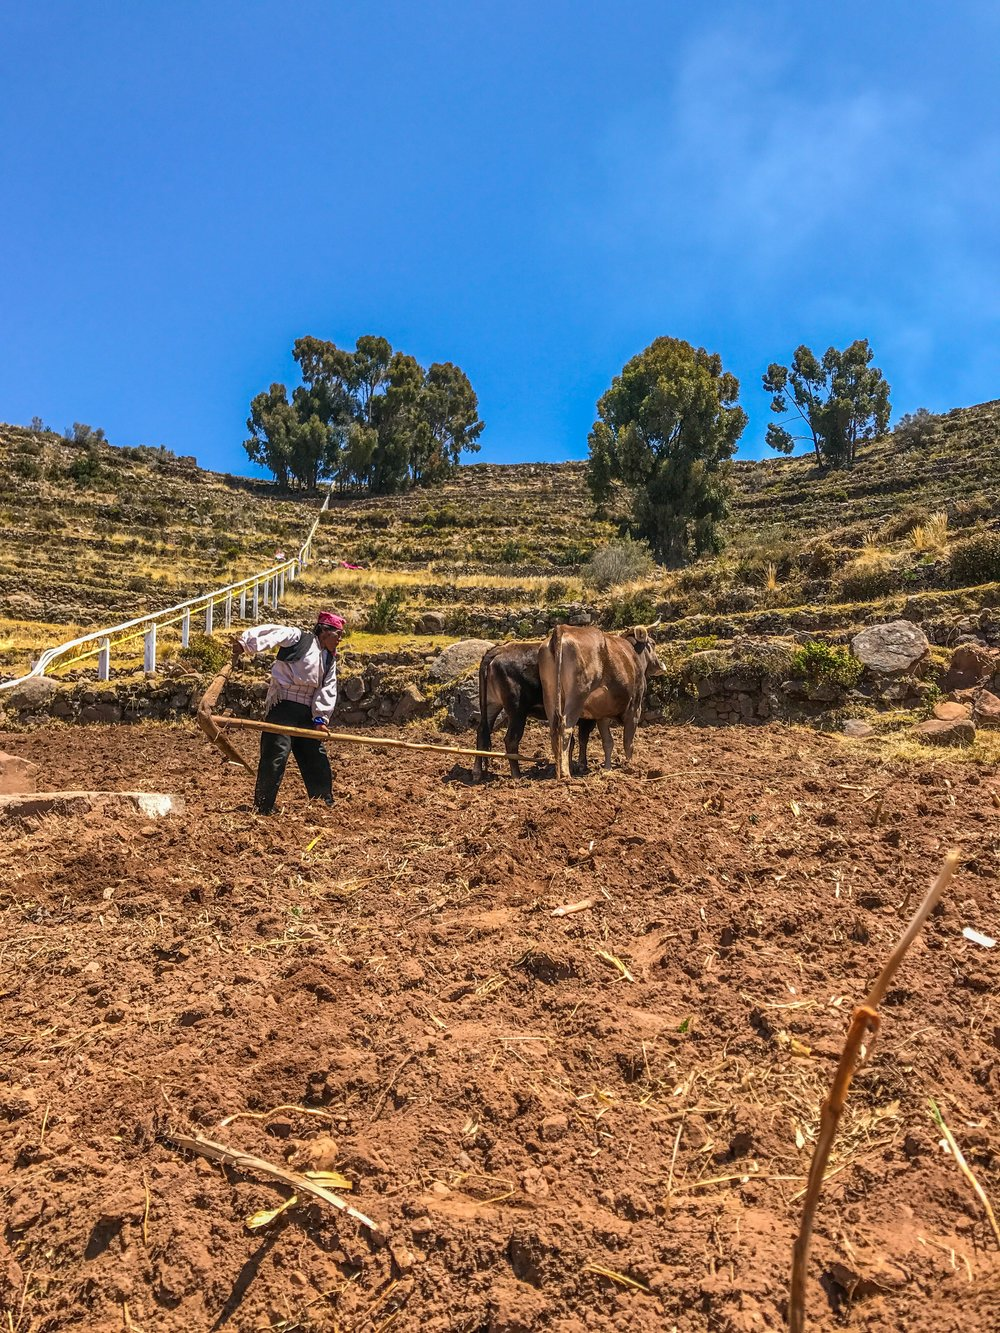 Taquile men leave their knit caps on even while working the fields